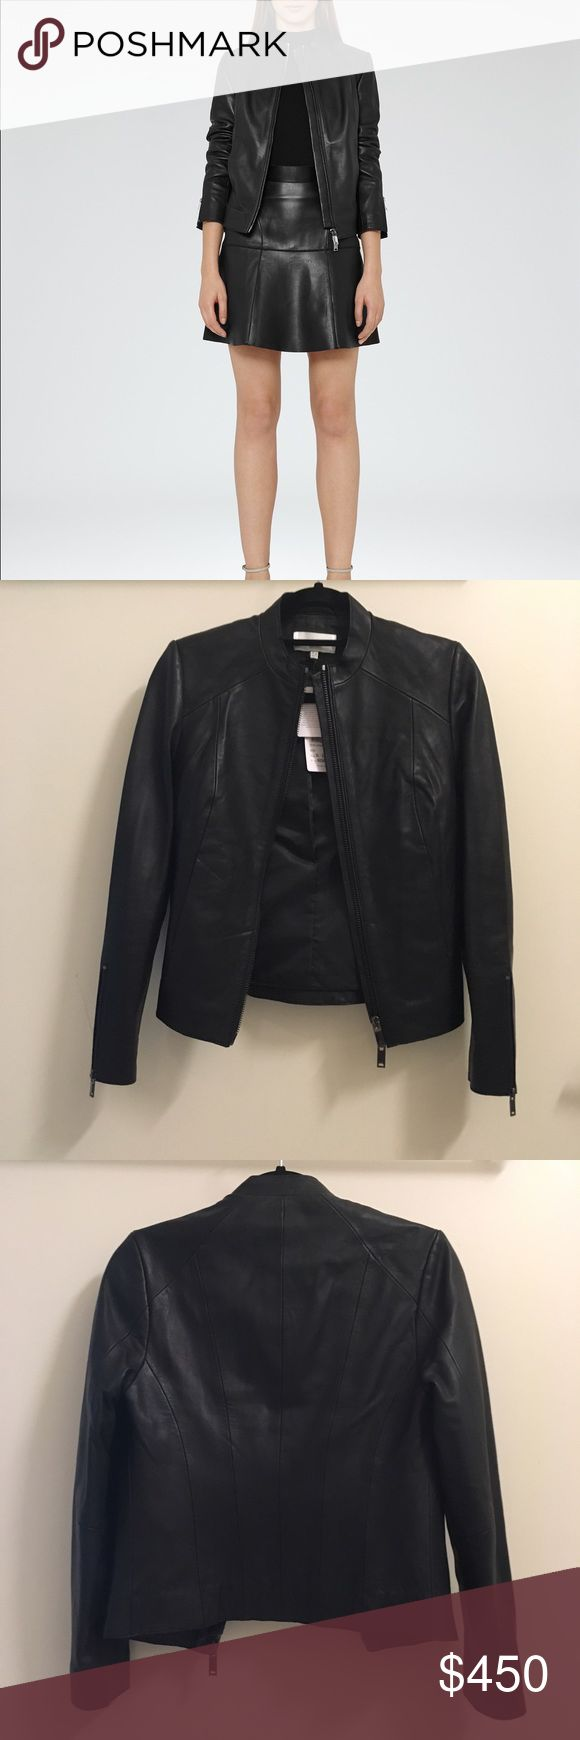 NWT Reiss Leather Jacket Never worn! Reiss Jackets & Coats